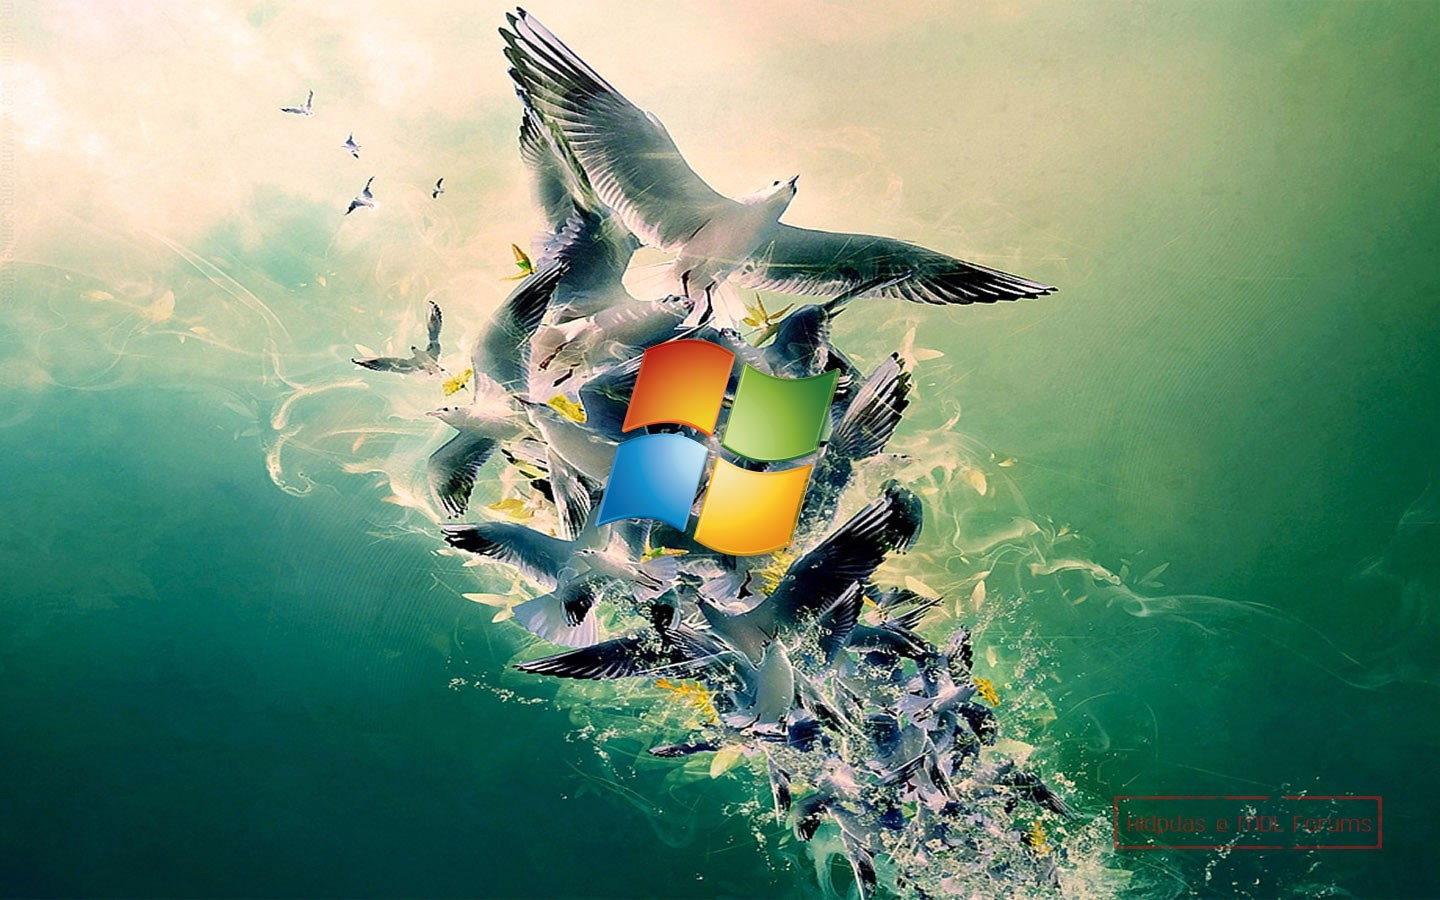 Free High-Definition Wallpapers: Windows 8 Wallpapers Free Download 1080p